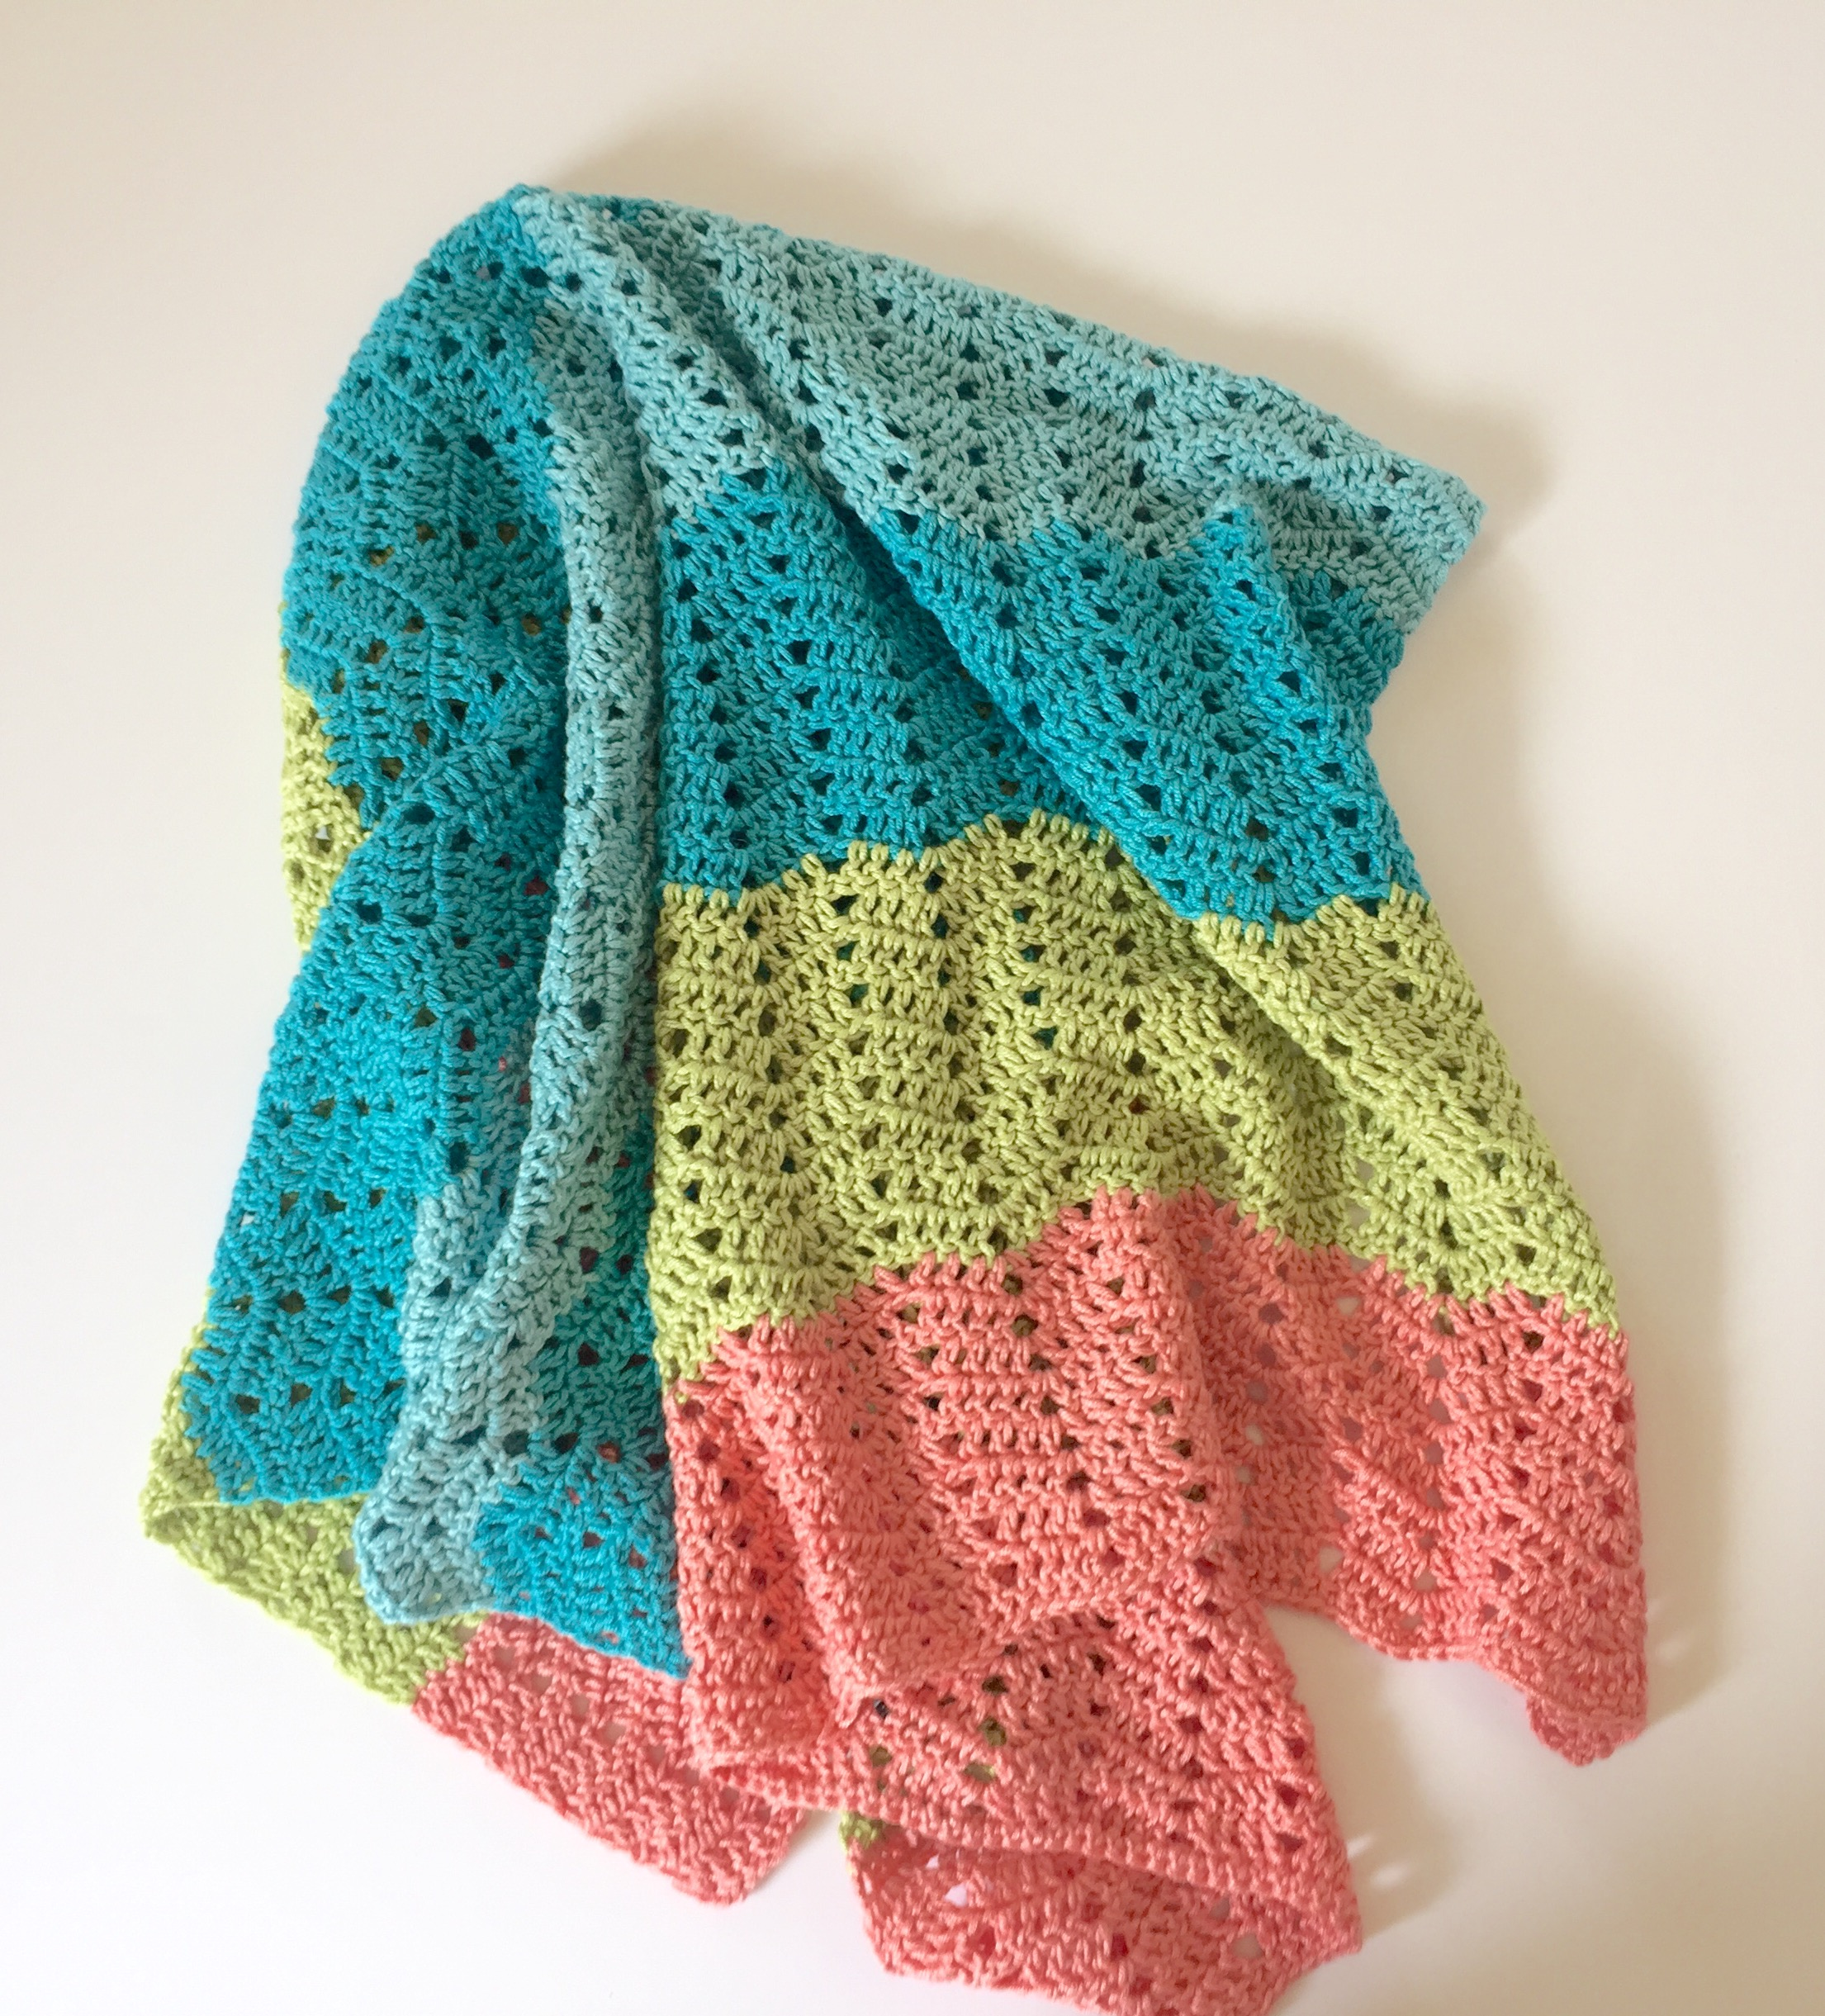 Beach Baby Baby Blanket crochet pattern by little monkeys designs